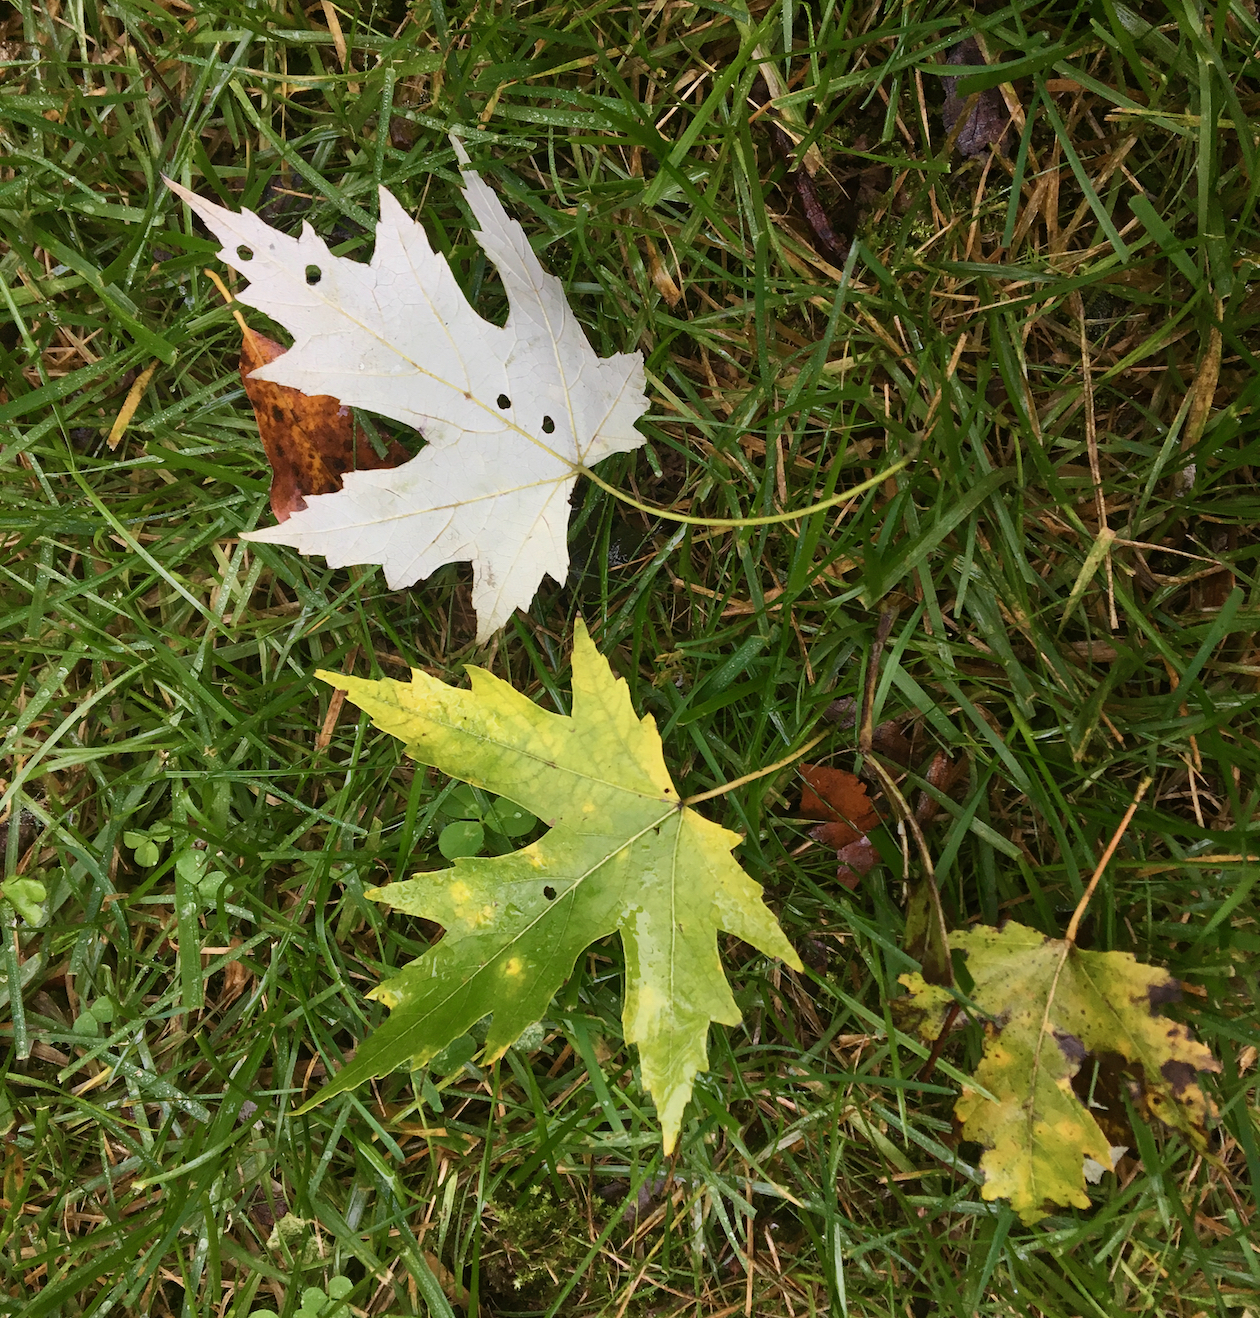 The Scientific Name is Acer saccharinum. You will likely hear them called Silver Maple, Soft Maple. This picture shows the Front side of leaf is green, underside is silvery. of Acer saccharinum